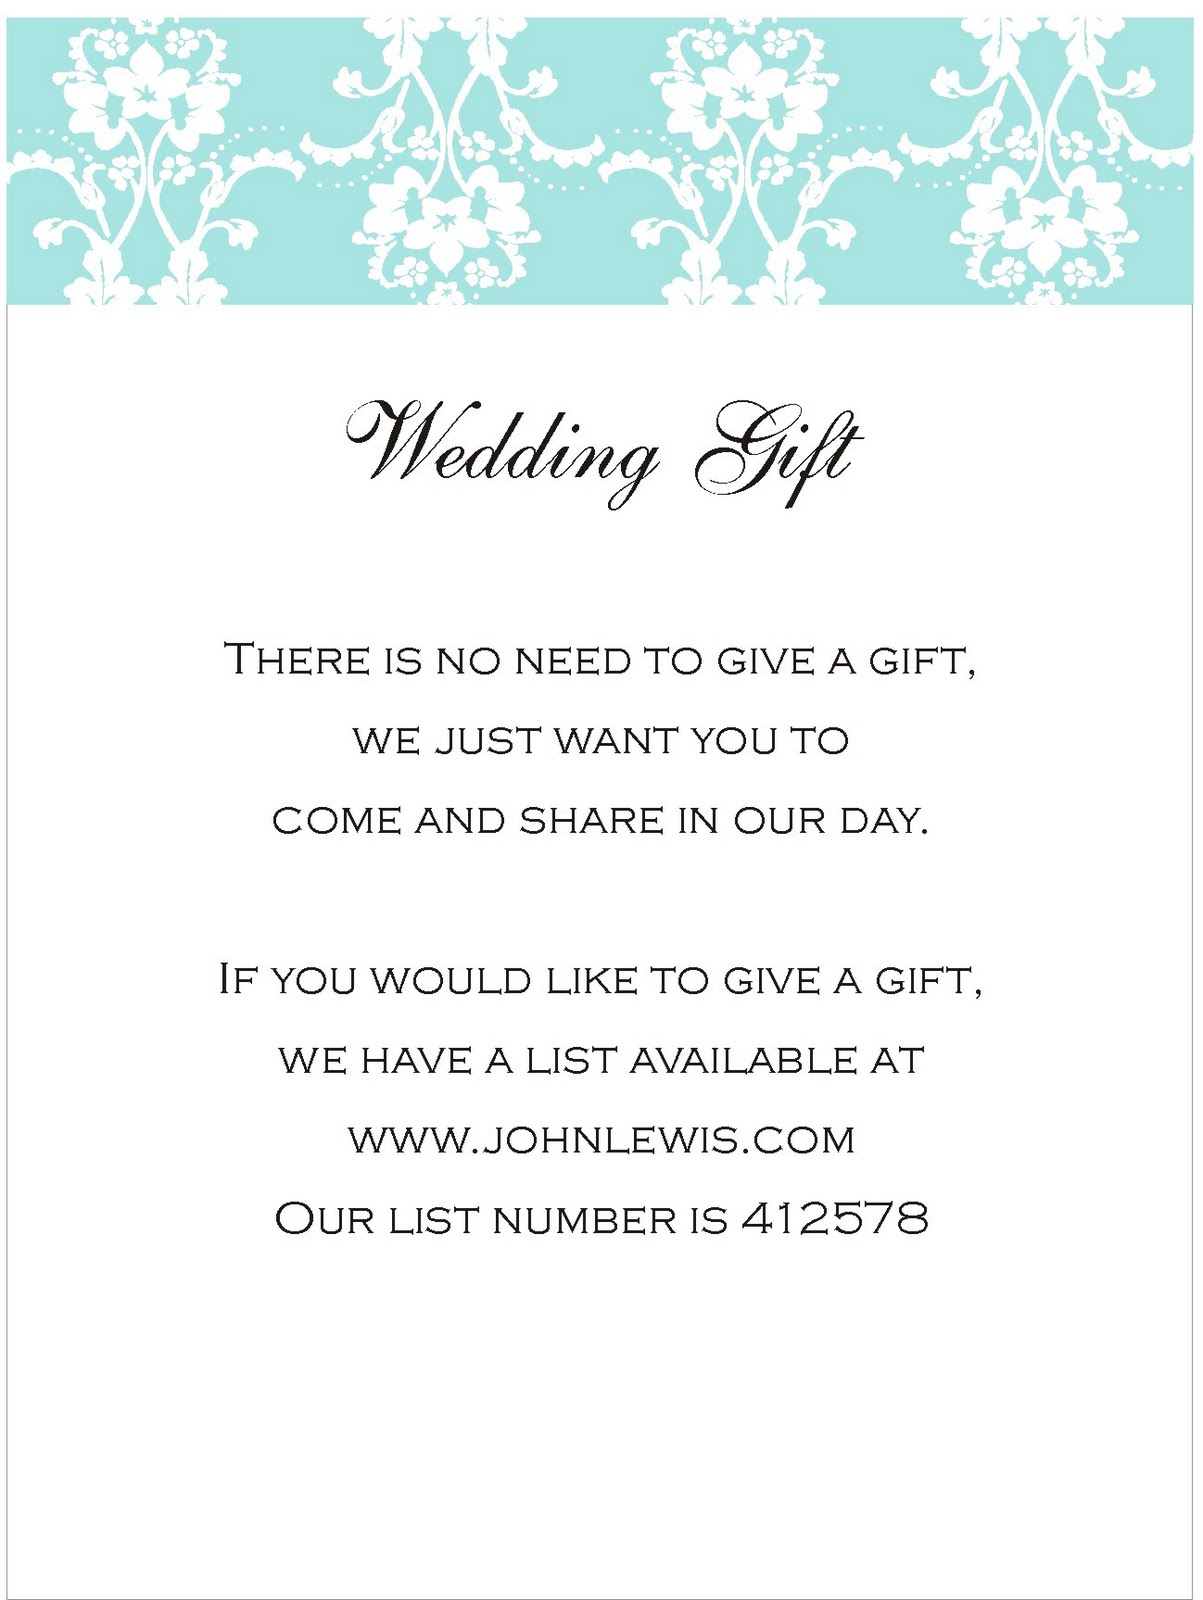 Wedding Gift List Travel Agents : Wedding Gift Card